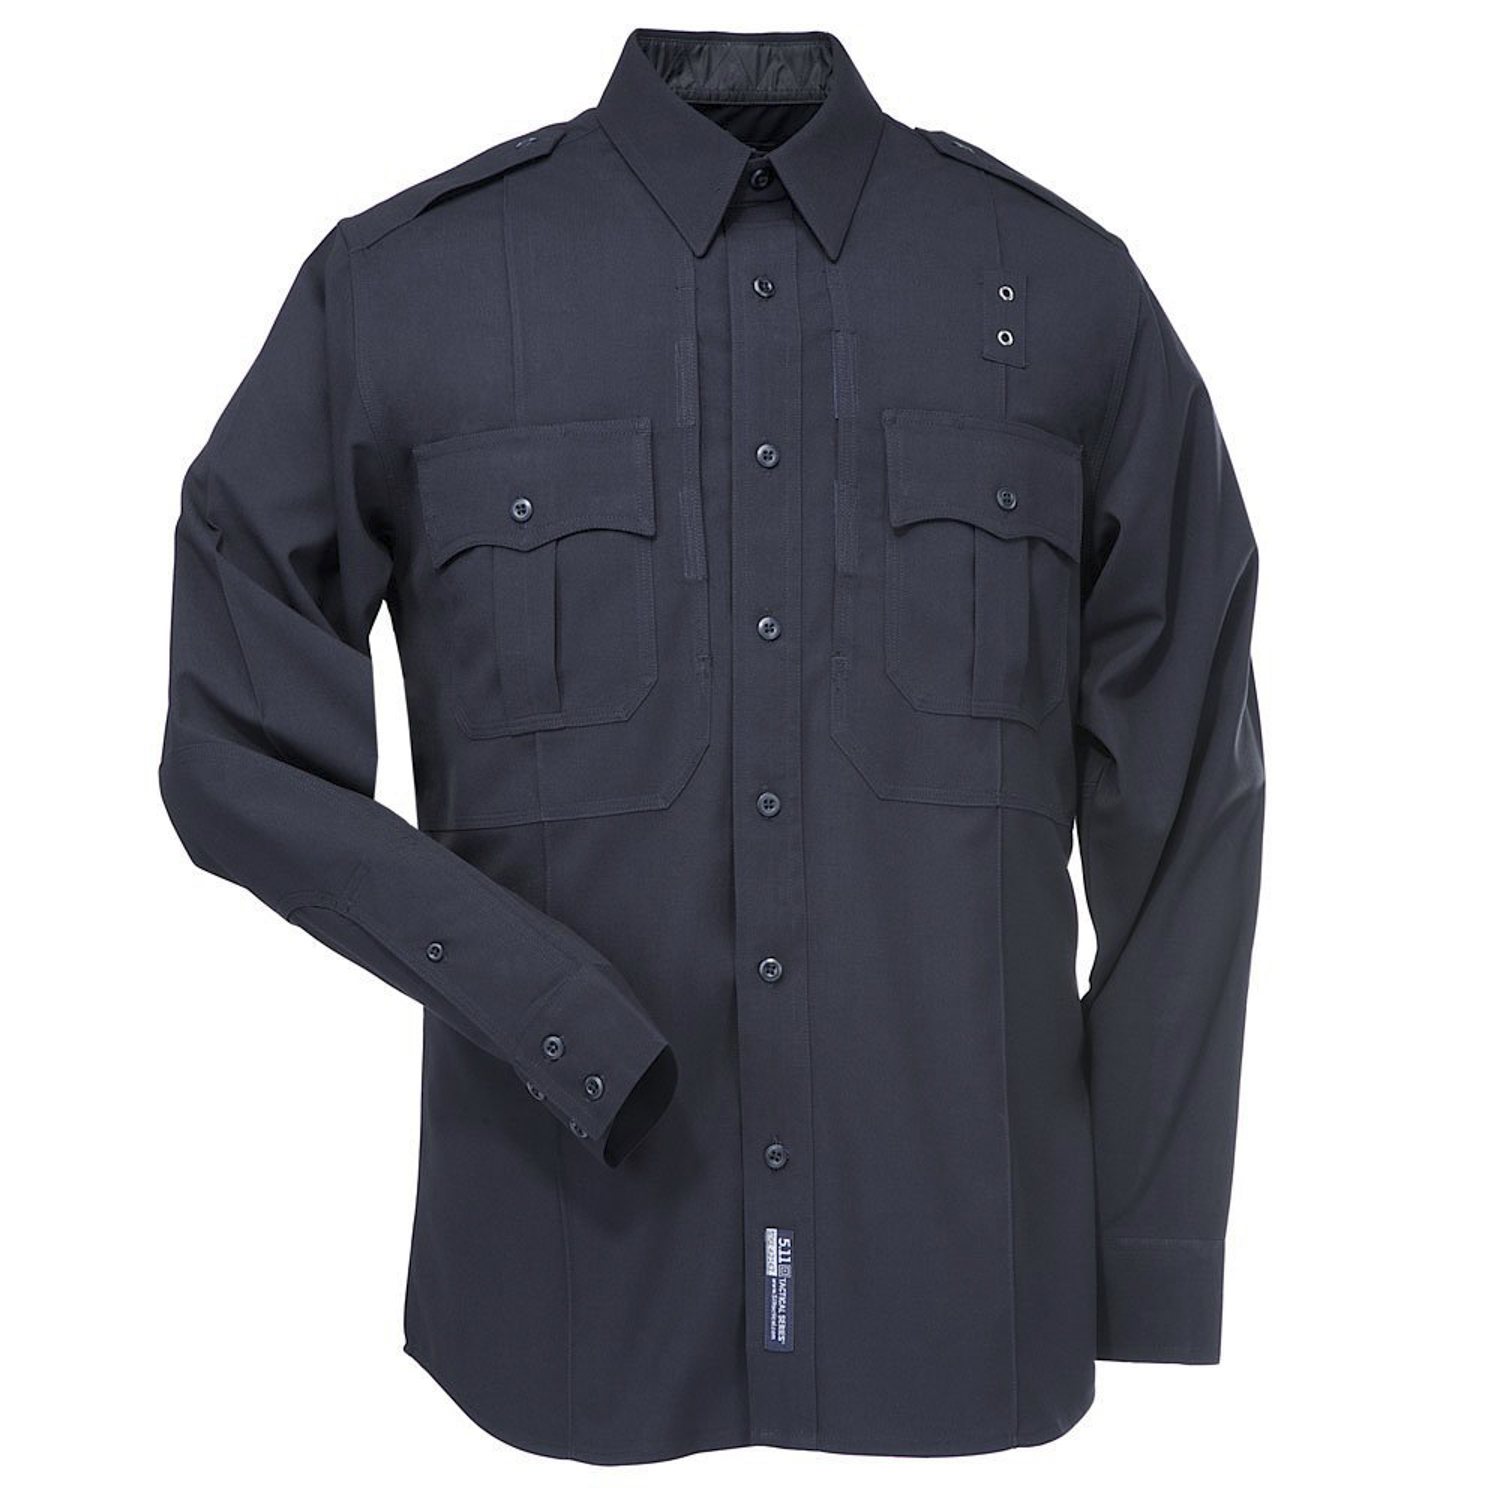 5.11 Tactical B Class Womens Poly Rayon Long Sleeve Shirt